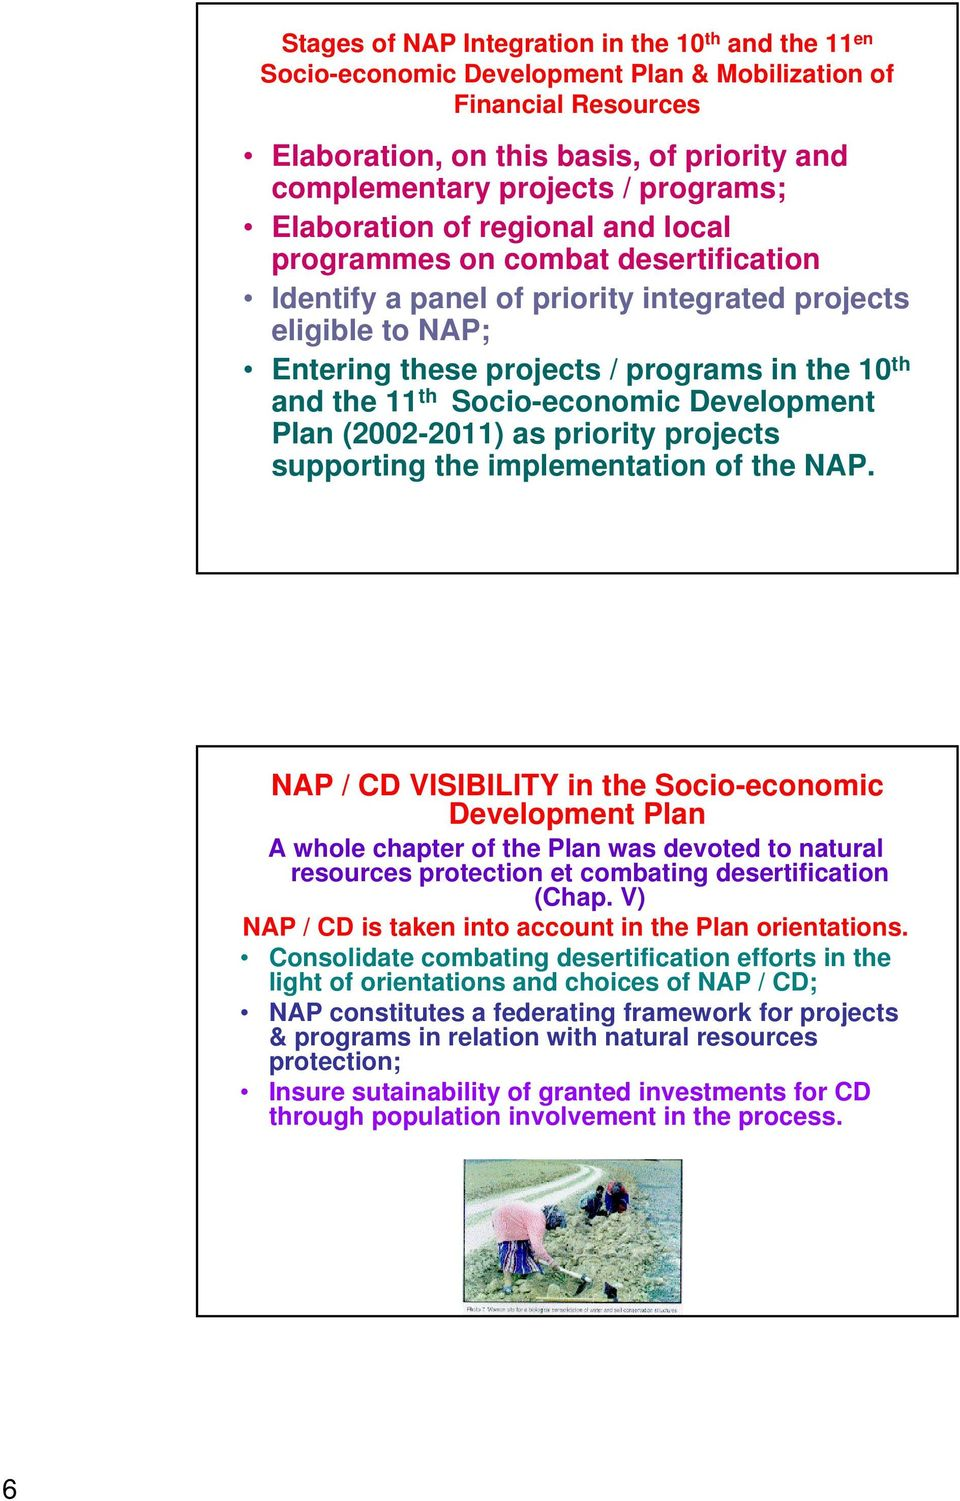 the 11 th Socio-economic Development Plan (2002-2011) as priority projects supporting the implementation of the NAP.